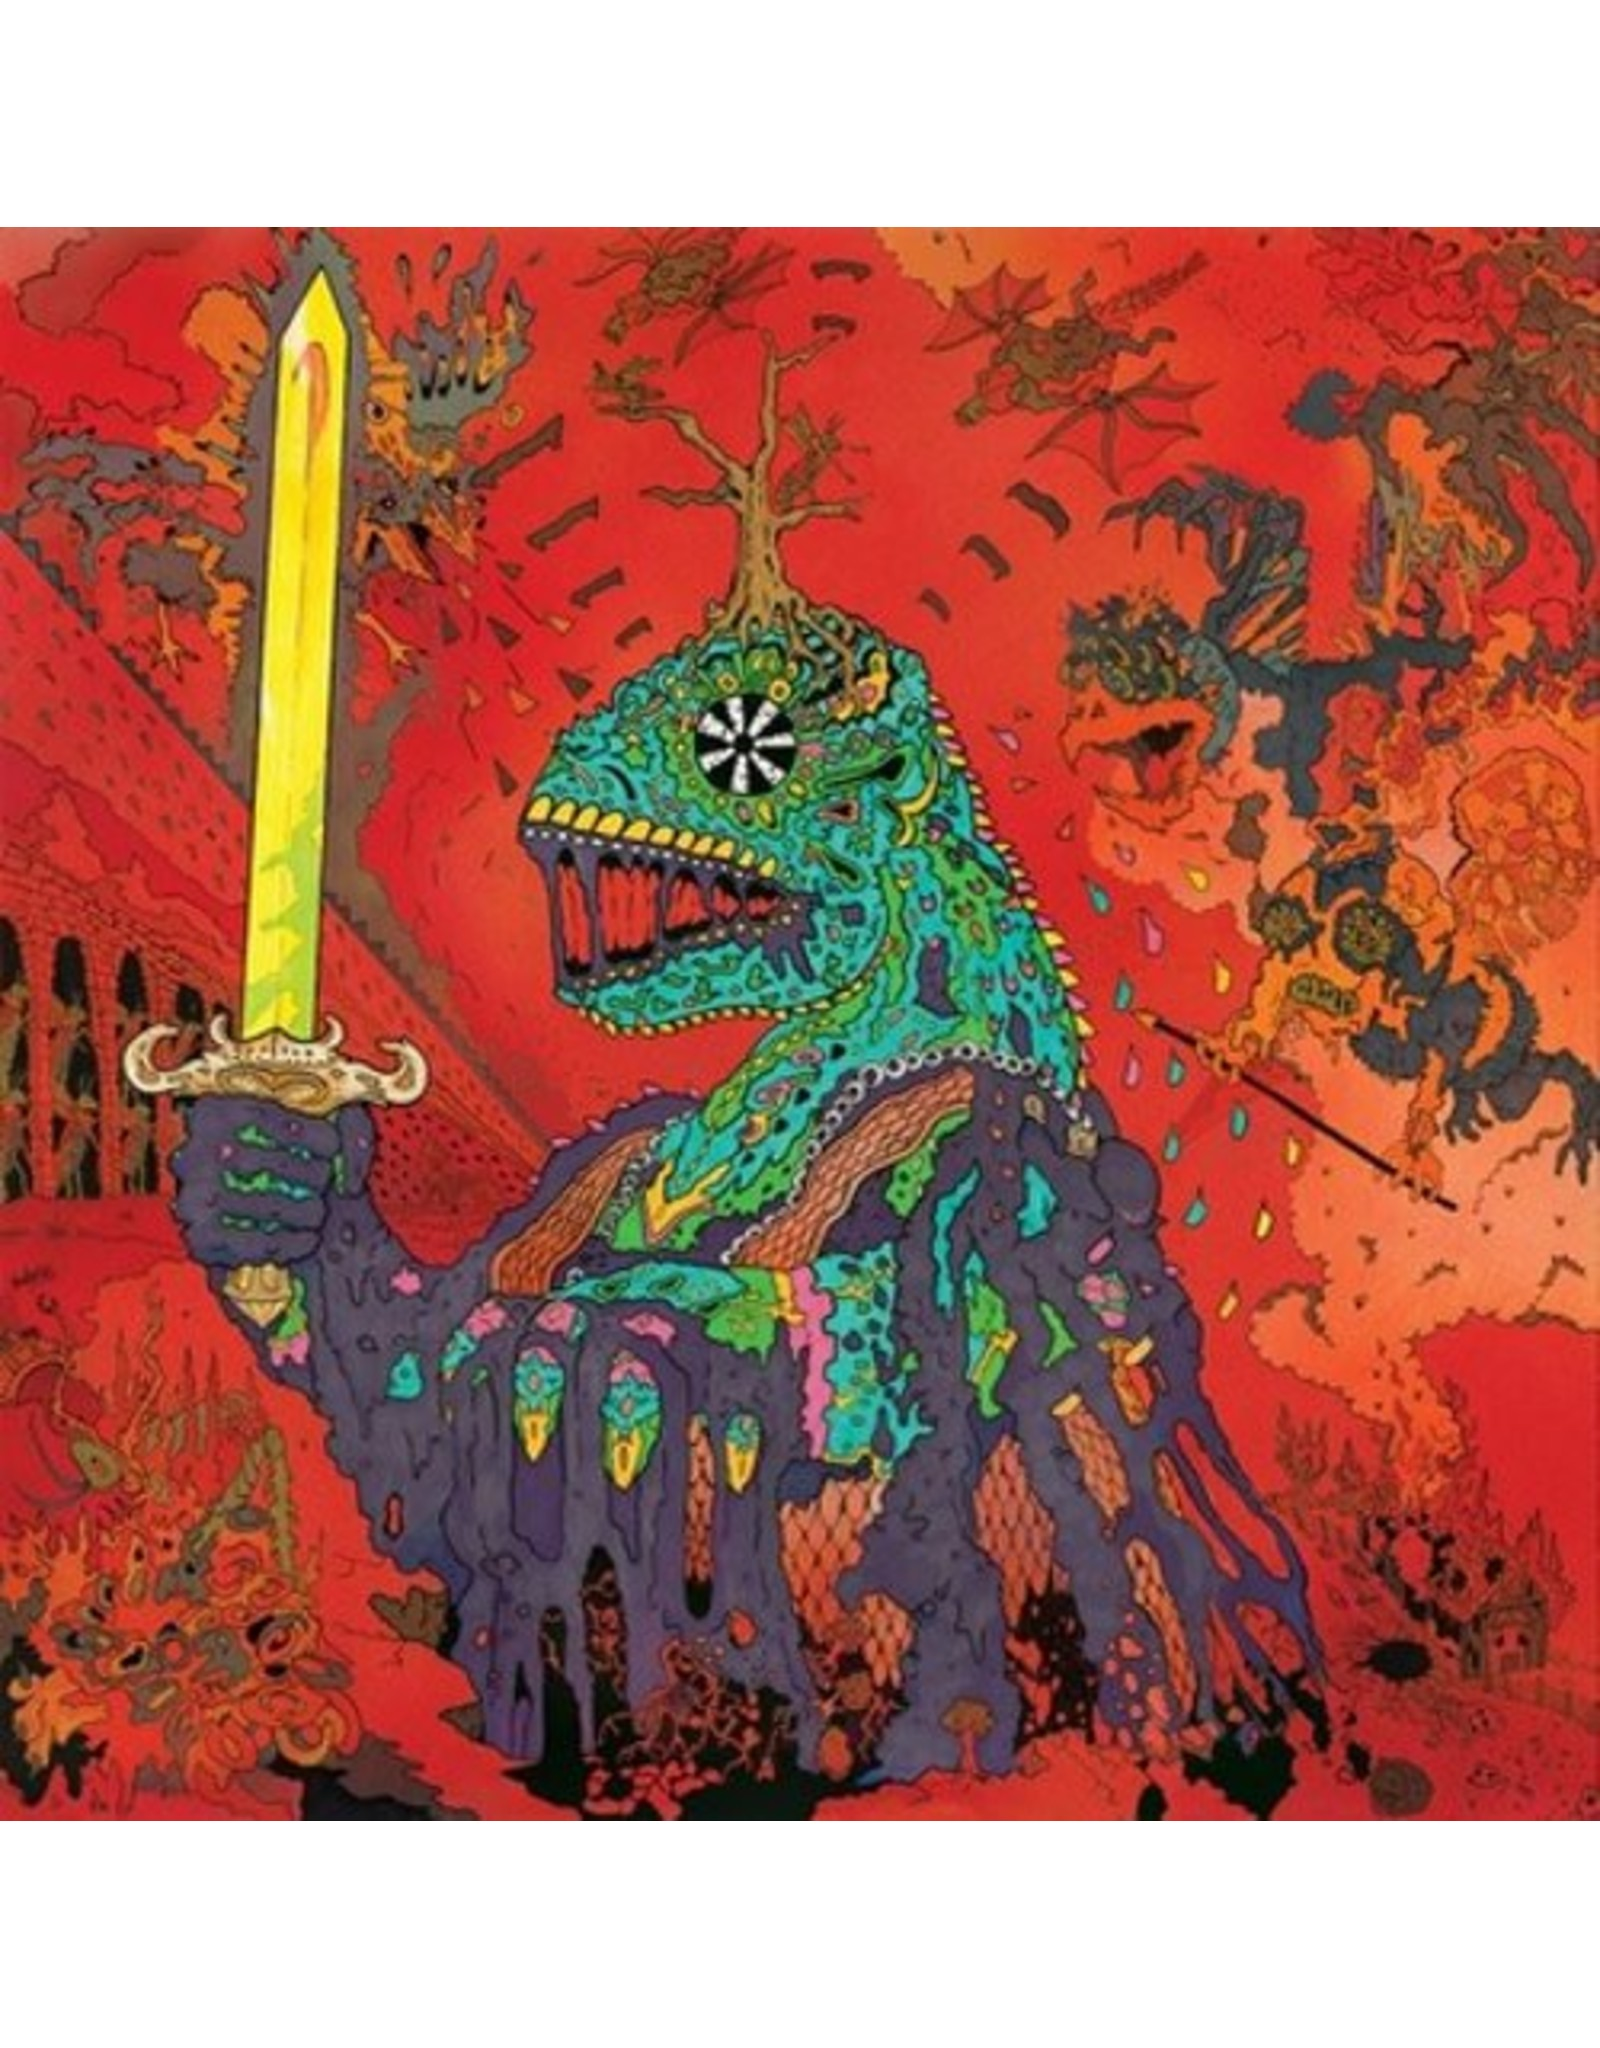 ATO King Gizzard & The Lizard Wizard: 12 Bar Bruise (Doublemint Green Colored Vinyl) LP